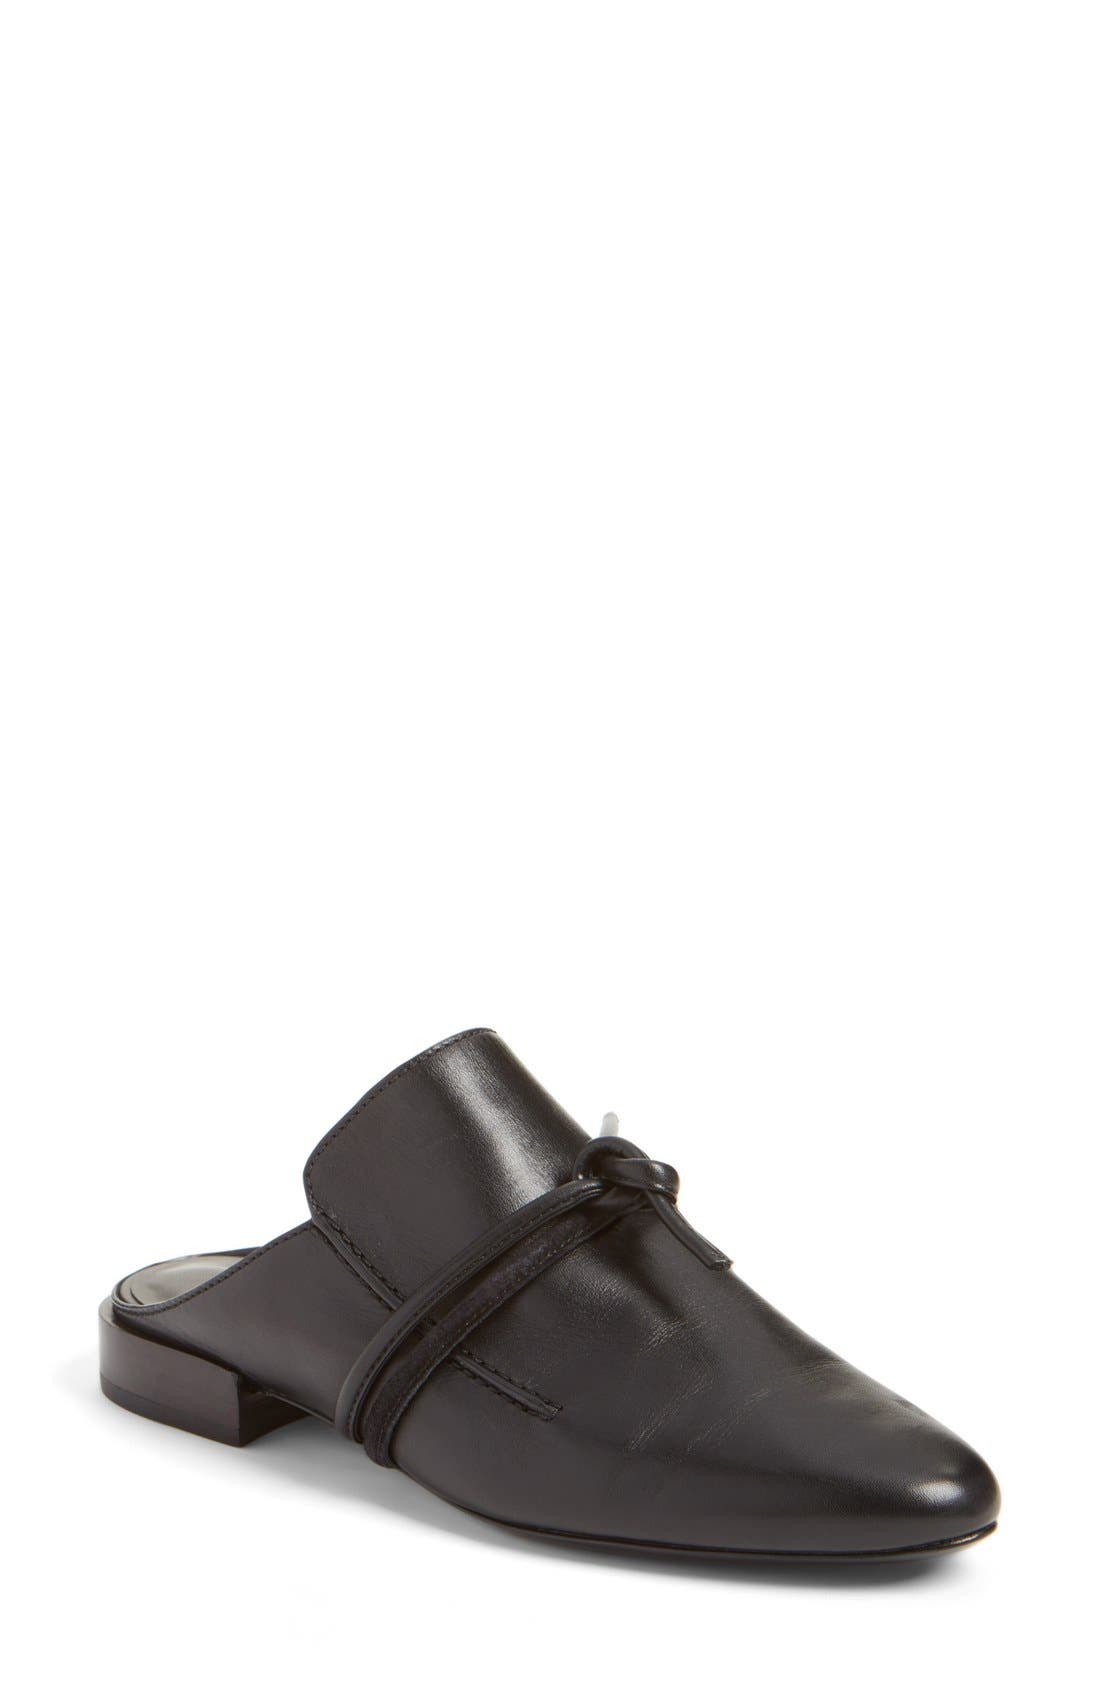 3.1 Phillip Lim 'Louie' Mule Loafer (Women)